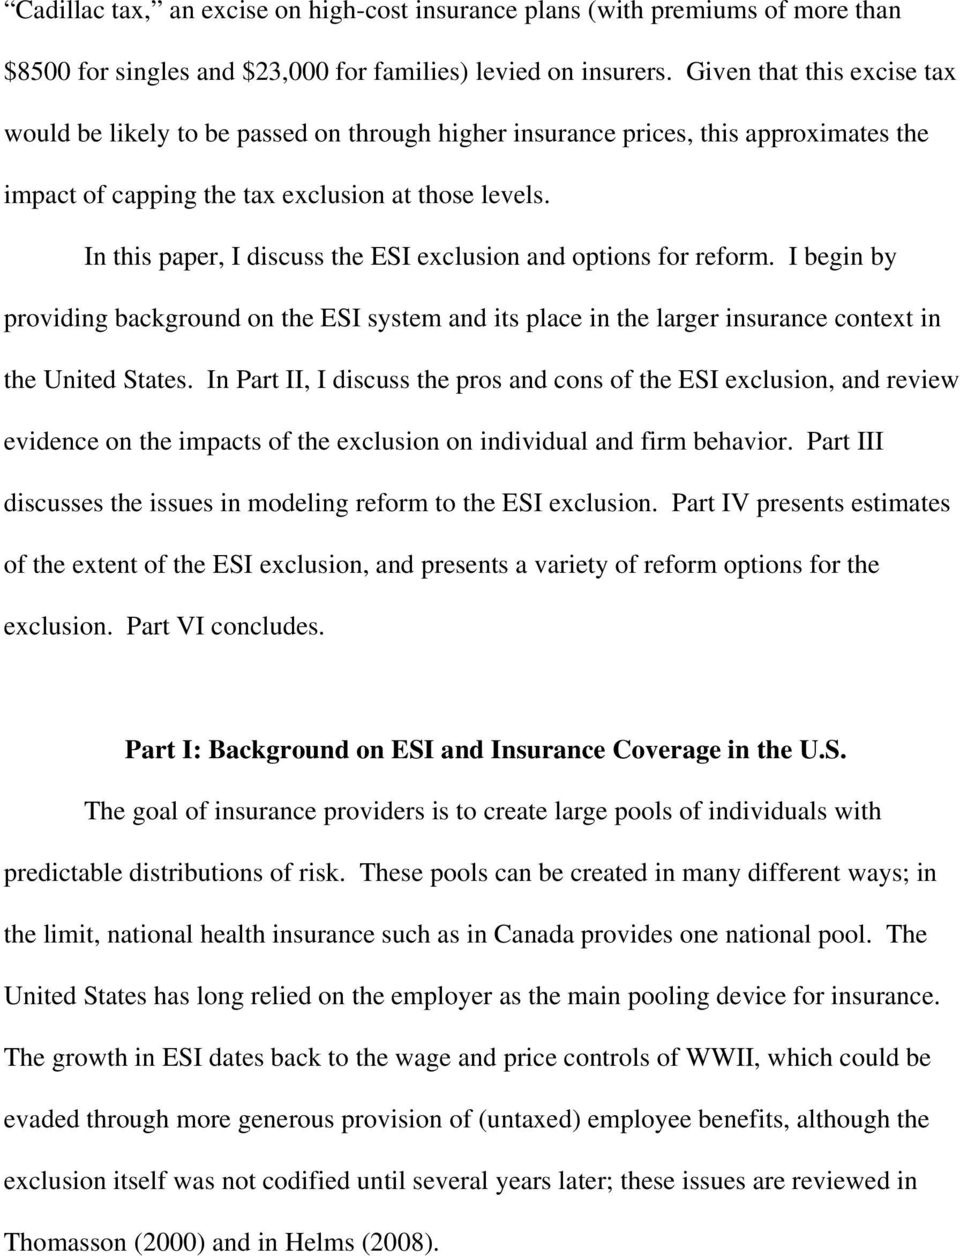 In this paper, I discuss the ESI exclusion and options for reform. I begin by providing background on the ESI system and its place in the larger insurance context in the United States.